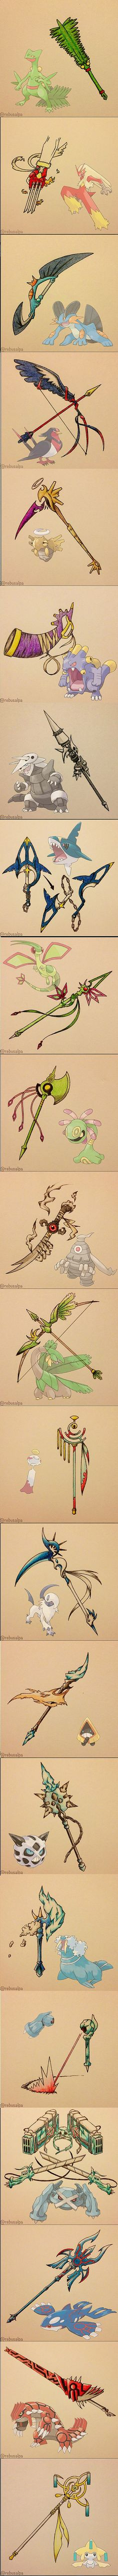 Pokemon Weapon